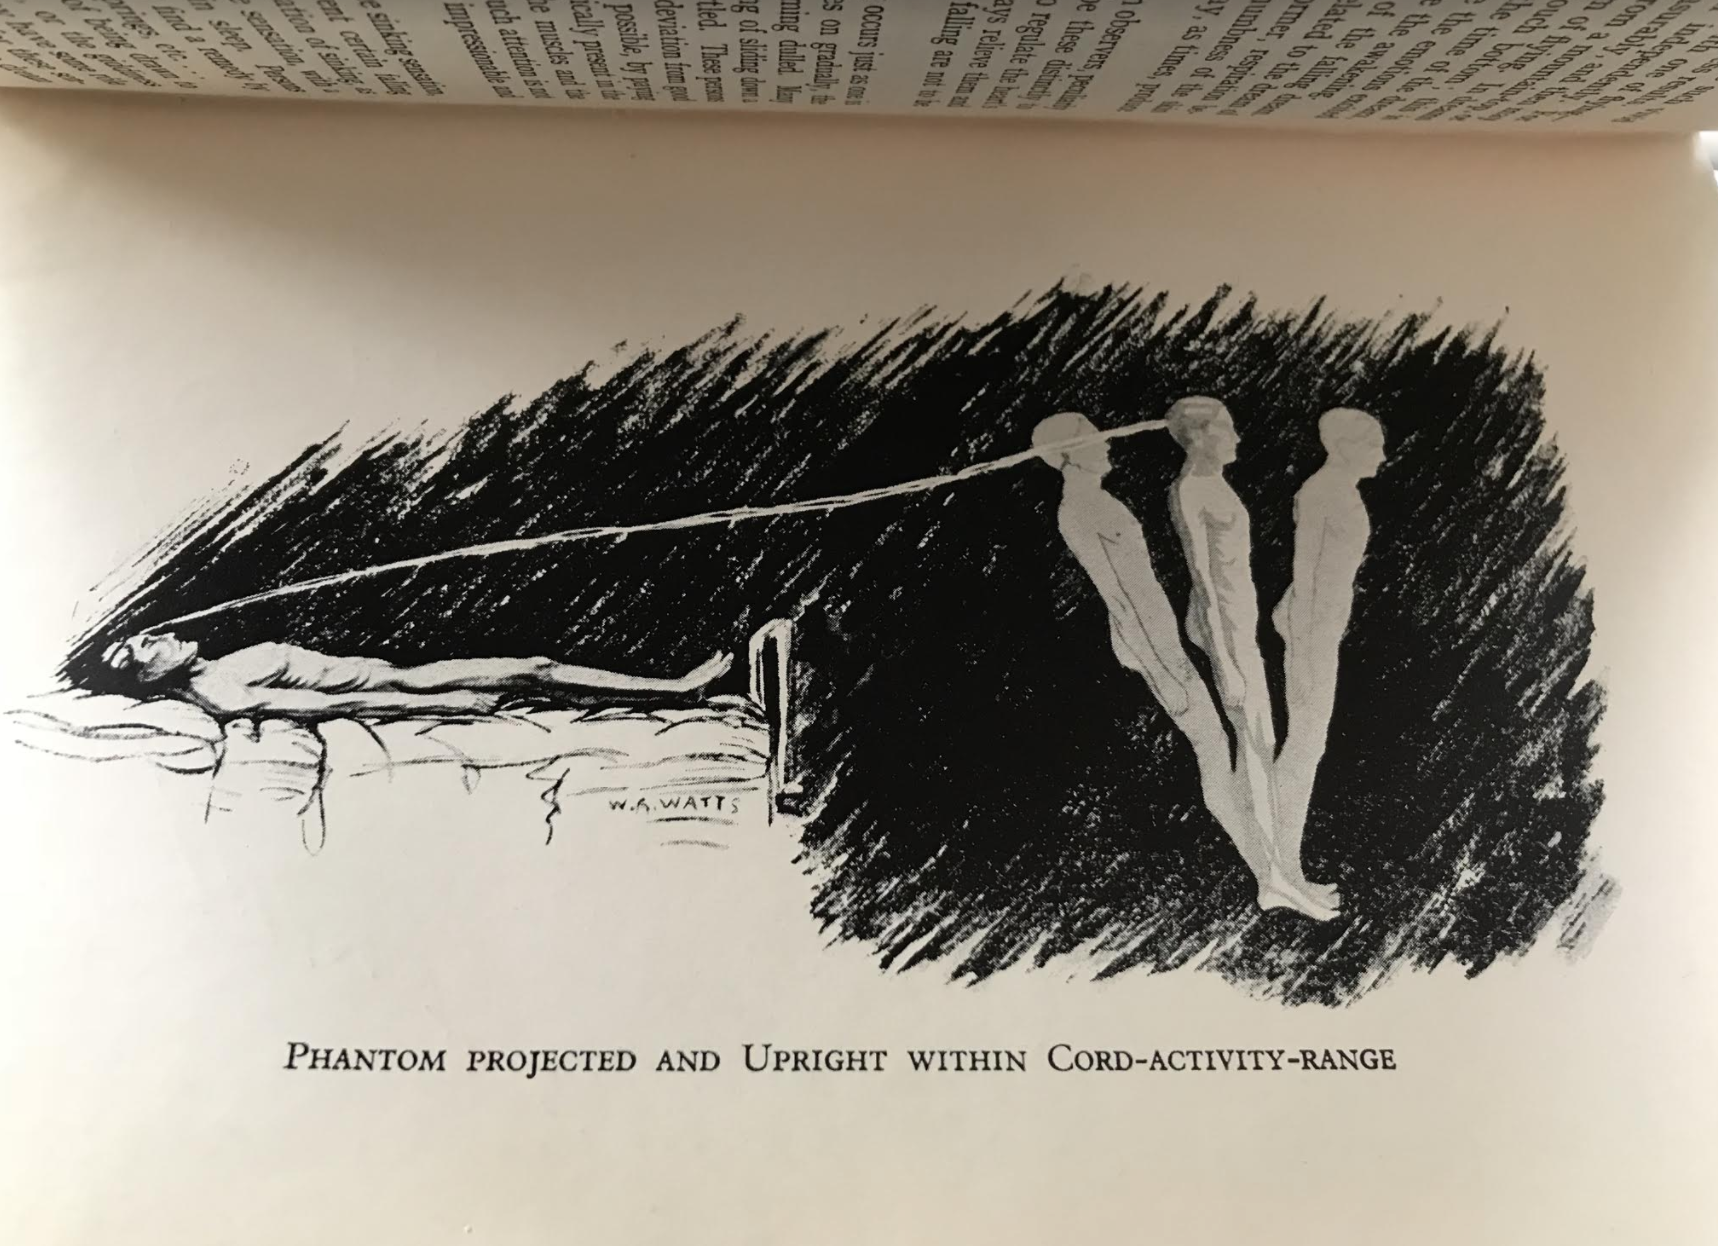 Astral Projection, from The Projection of the Astral Body, by Hereward Carrington and Sylvan Muldoon (1929).